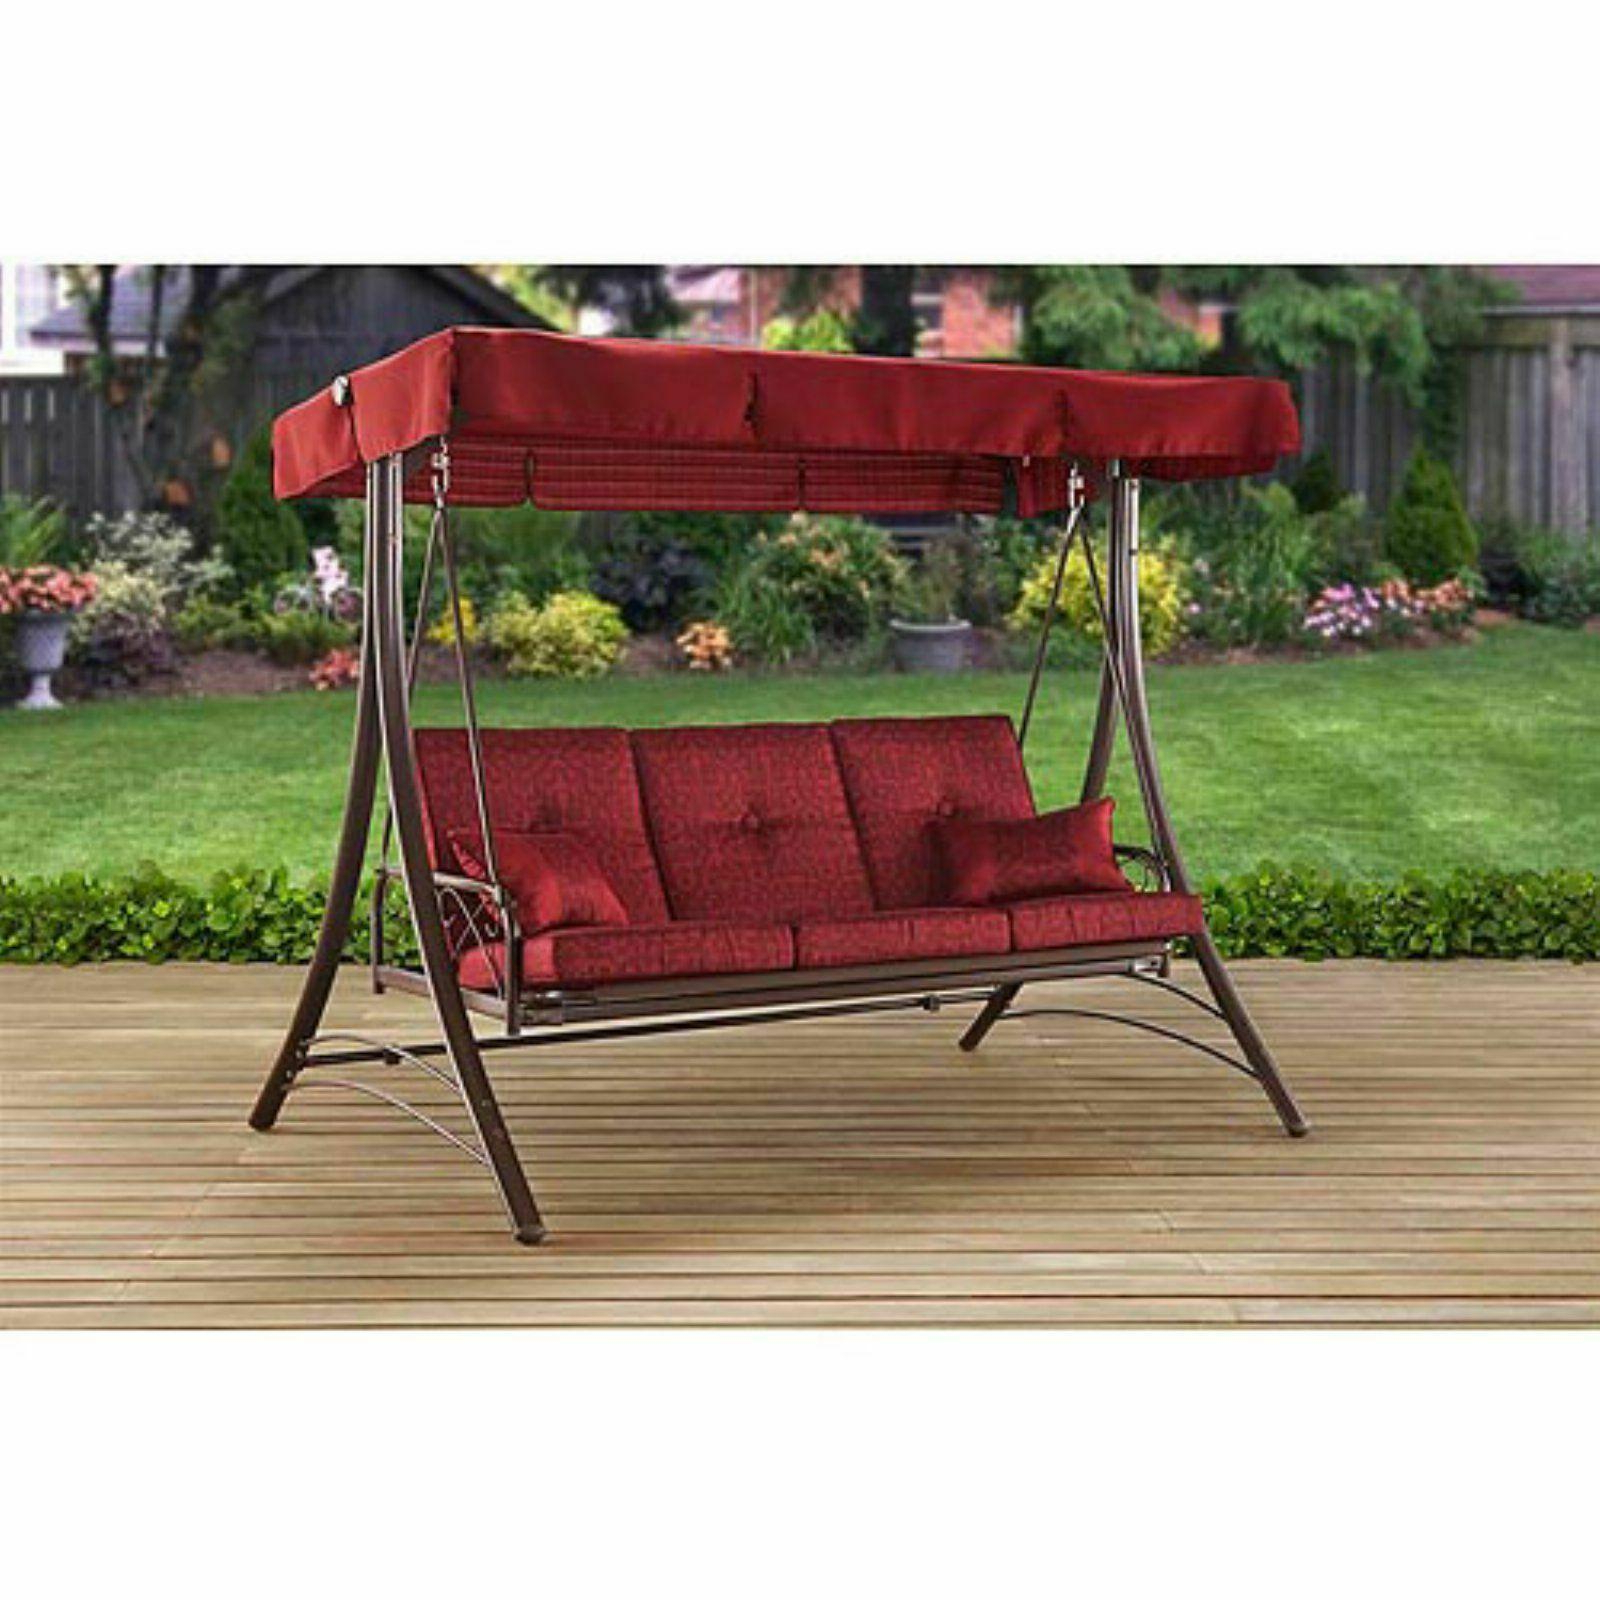 3 Person Red With Brown Powder Coated Frame Steel Outdoor Swings Intended For Well Liked Front Porch Swing Set Outdoor Patio Swin (View 16 of 30)